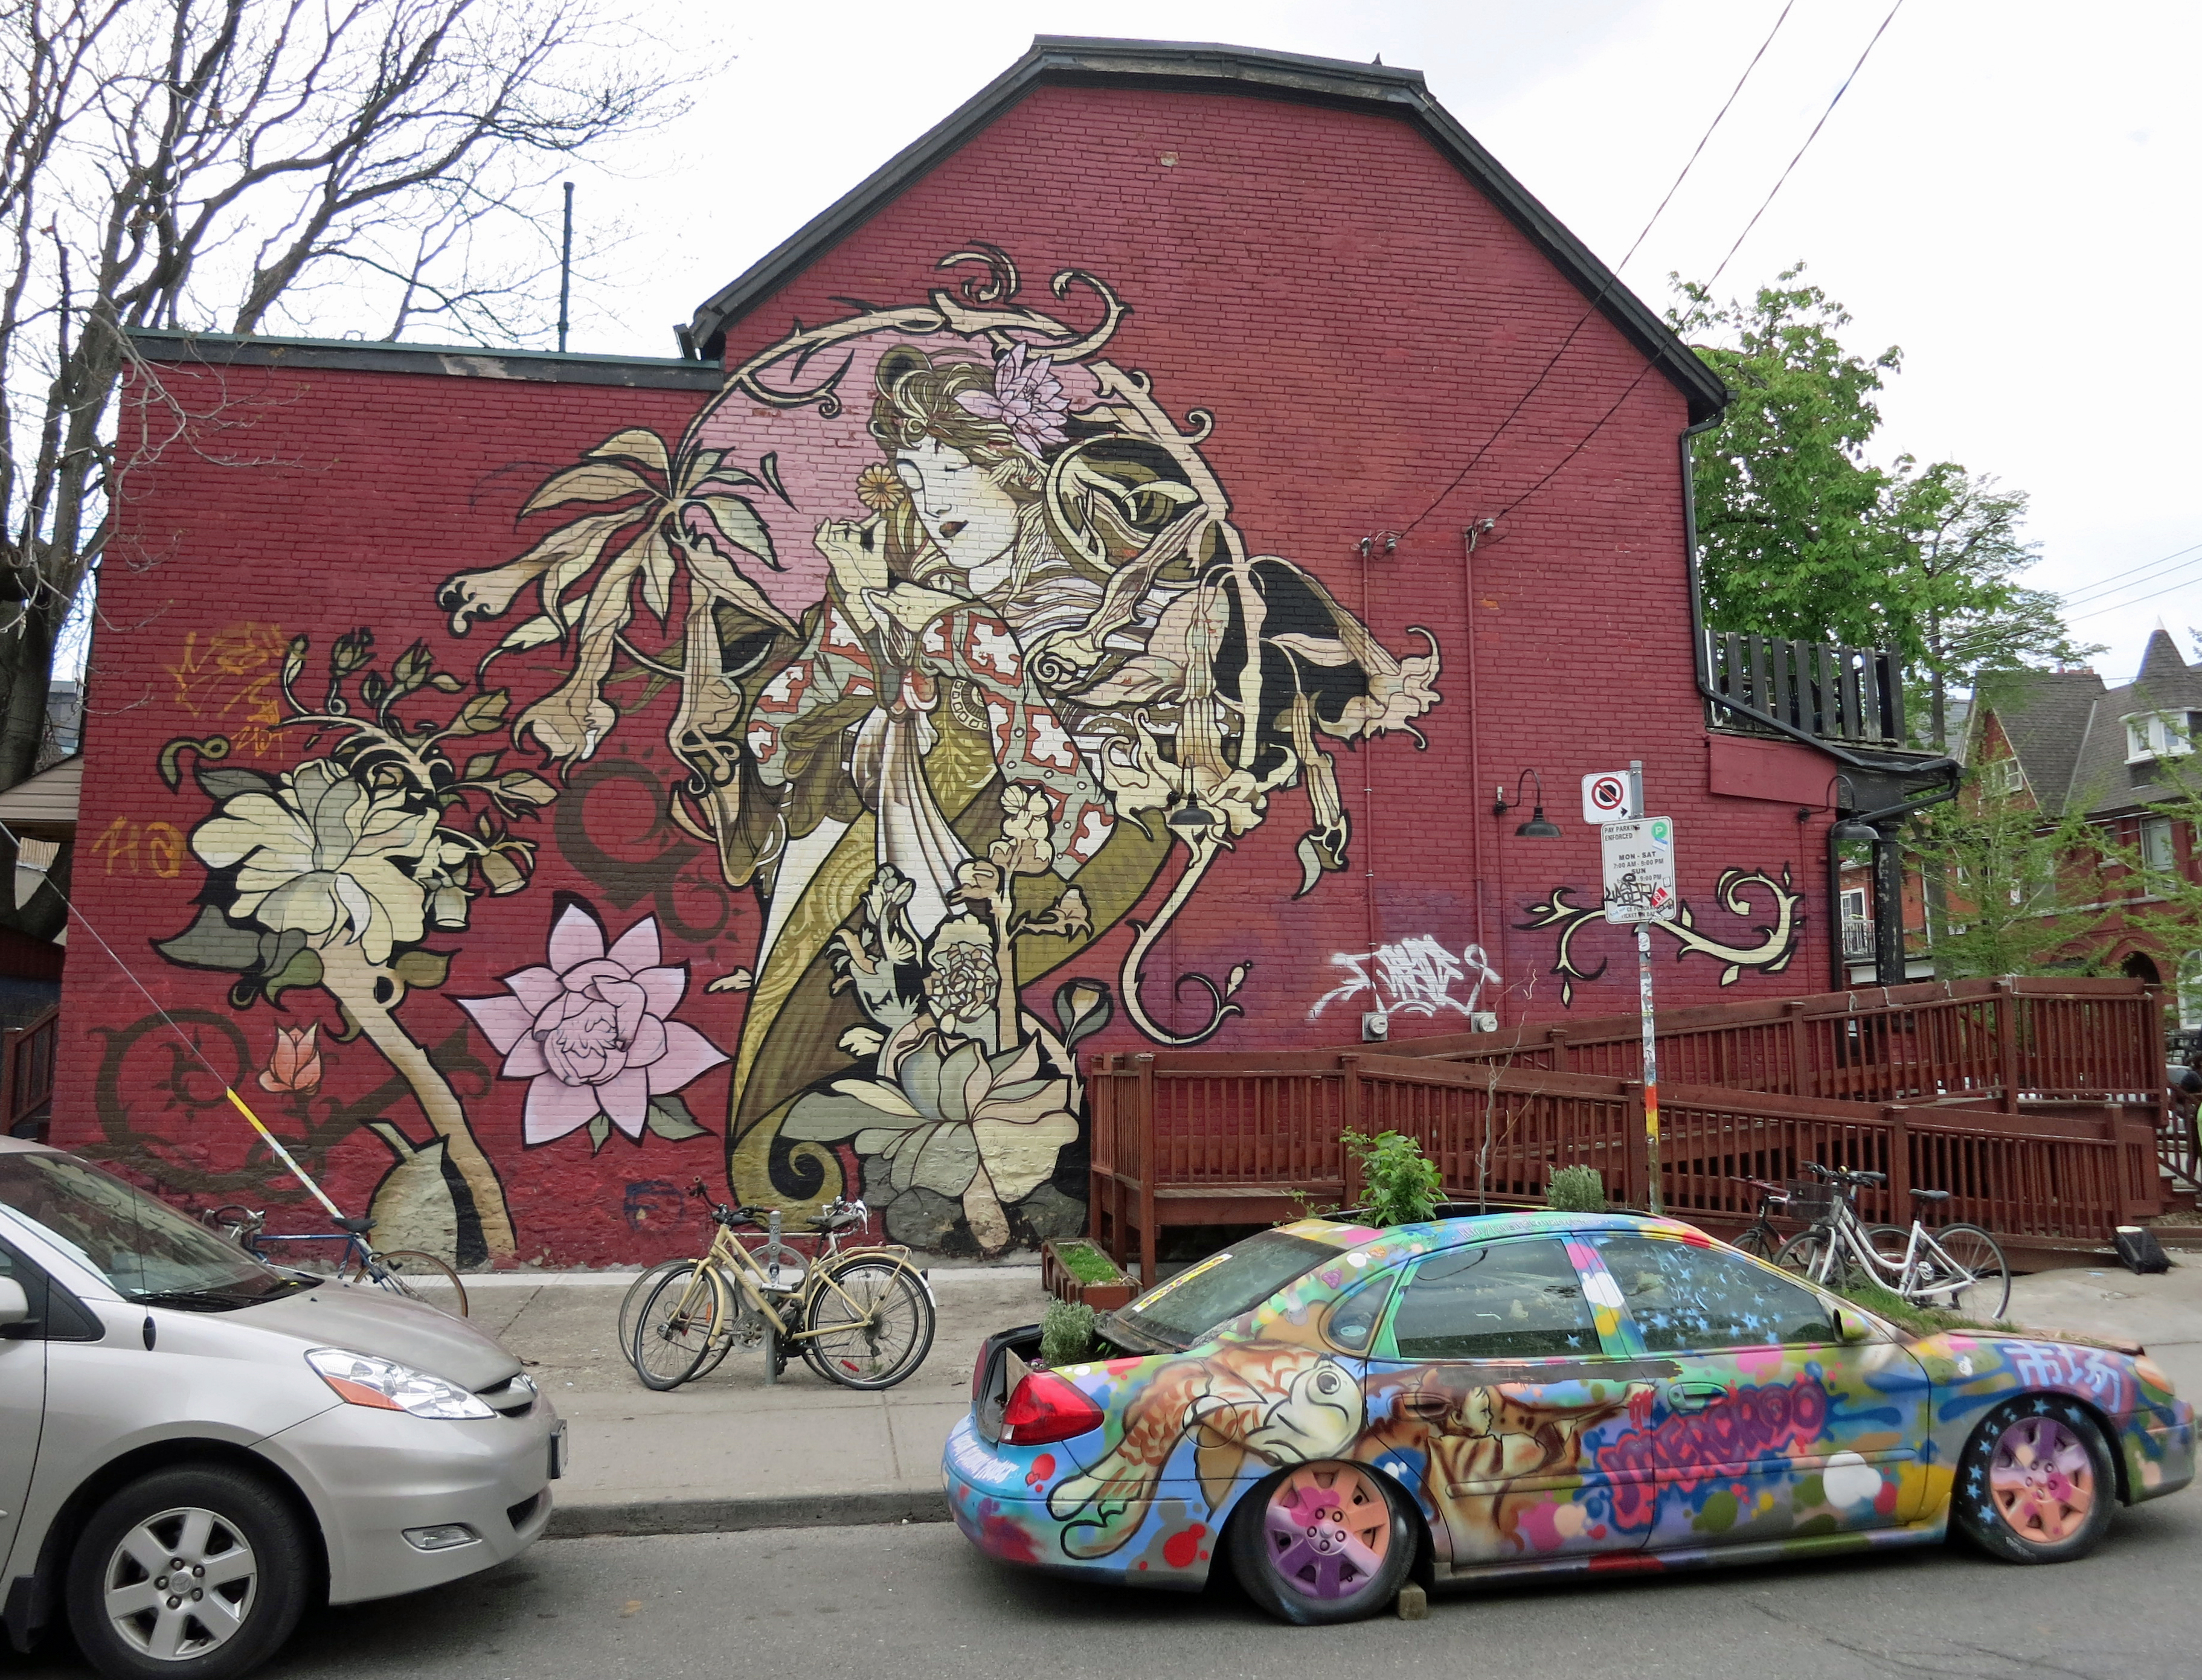 Kensington art nouveau mural flickr photo sharing for Art nouveau mural